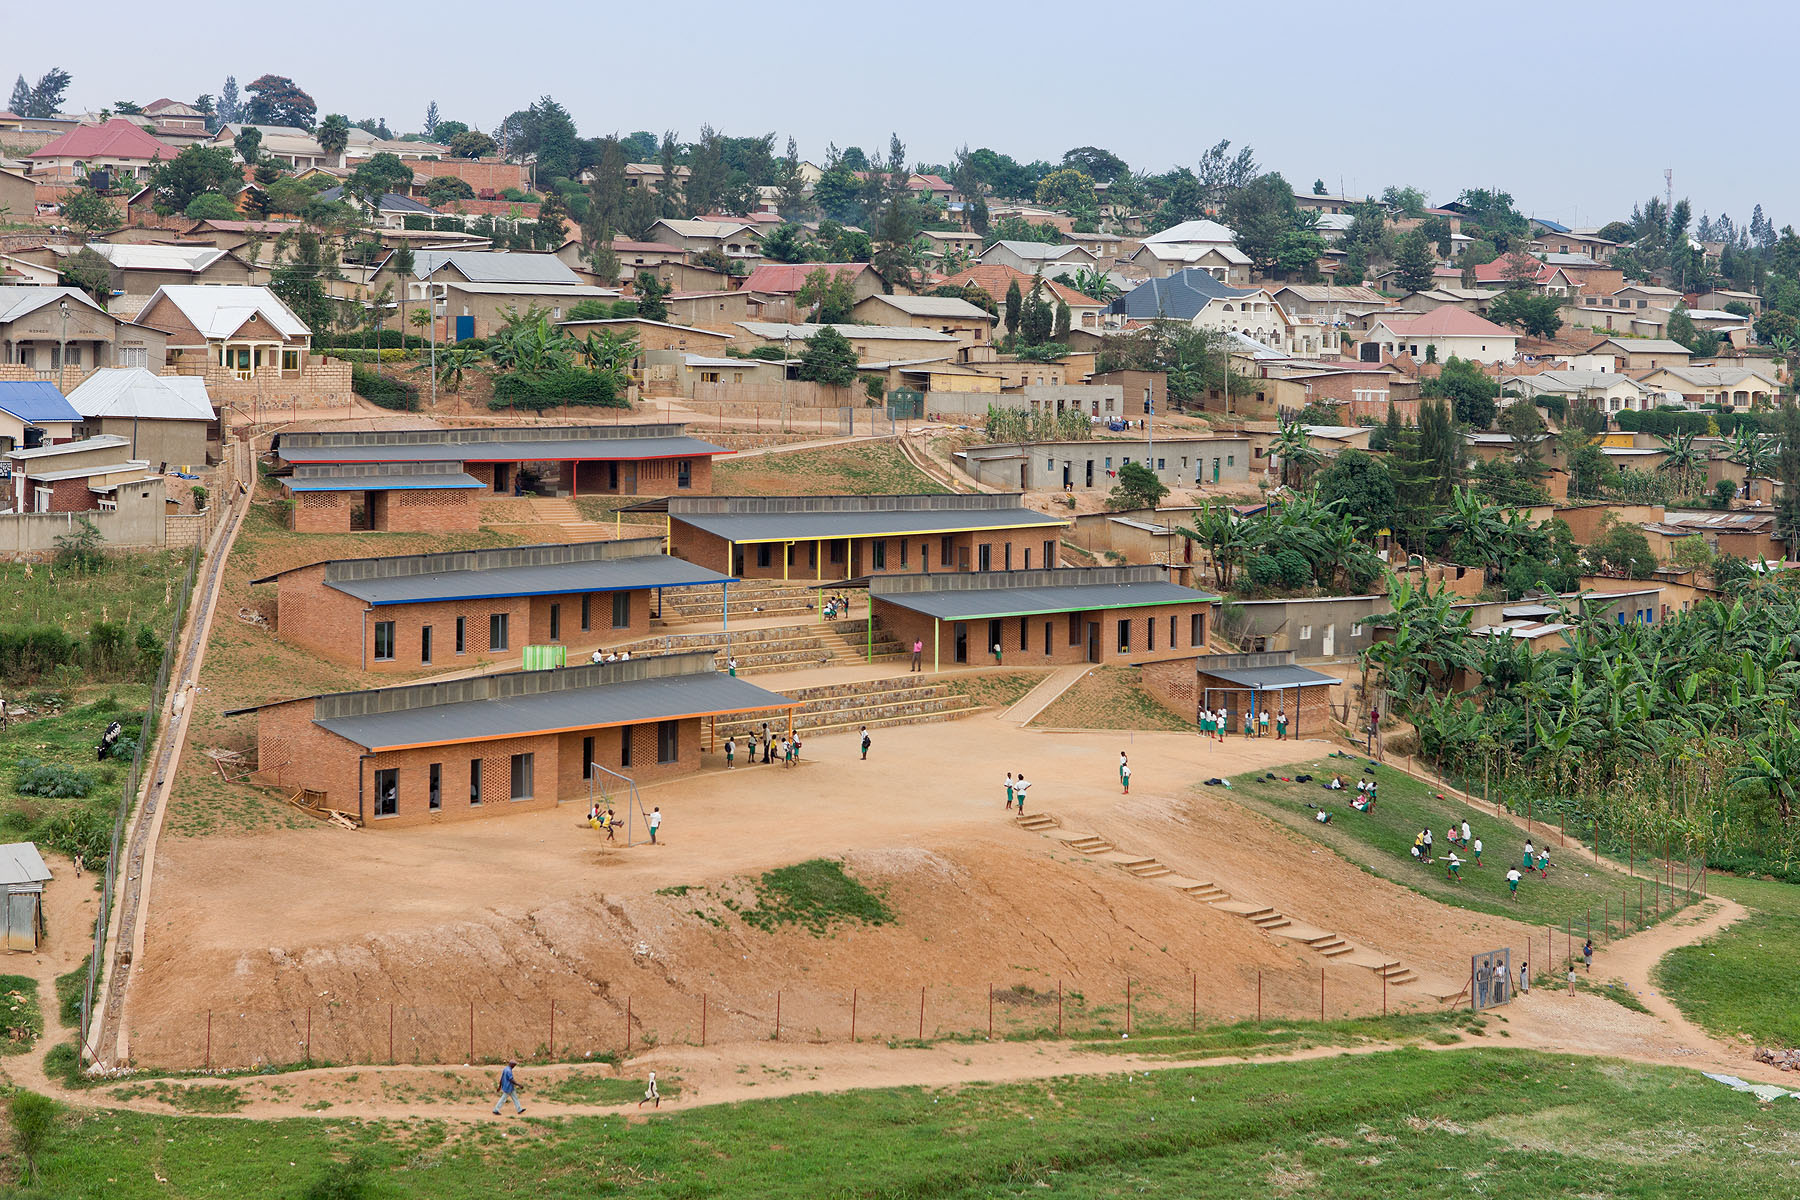 Sustainable architecture in Rwanda